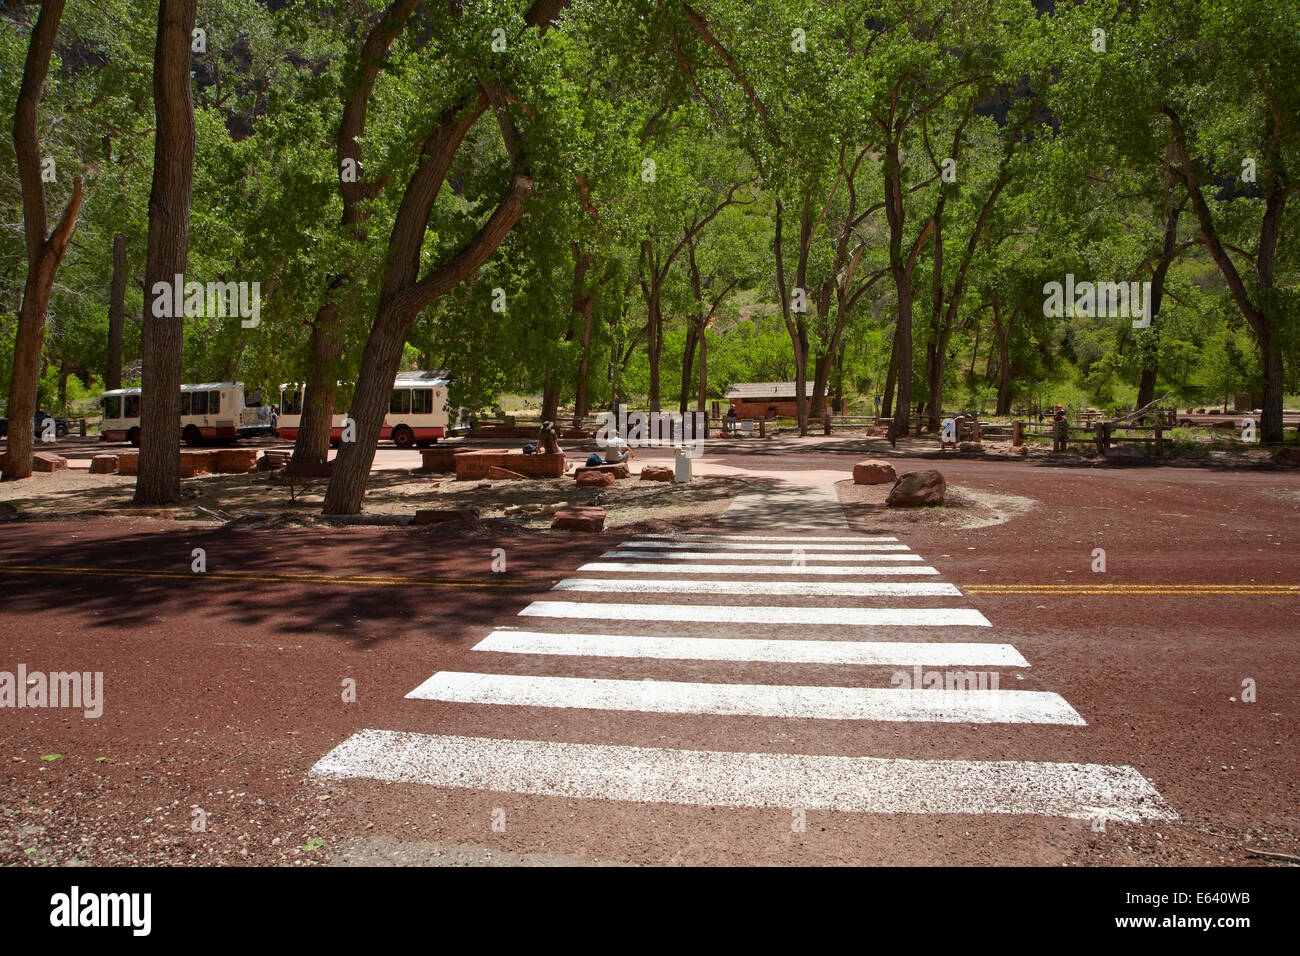 Pedestrian crossing to shuttle stop at Grotto picnic area, Zion Canyon Scenic Drive, Zion National Park, Utah, USA - Stock Image